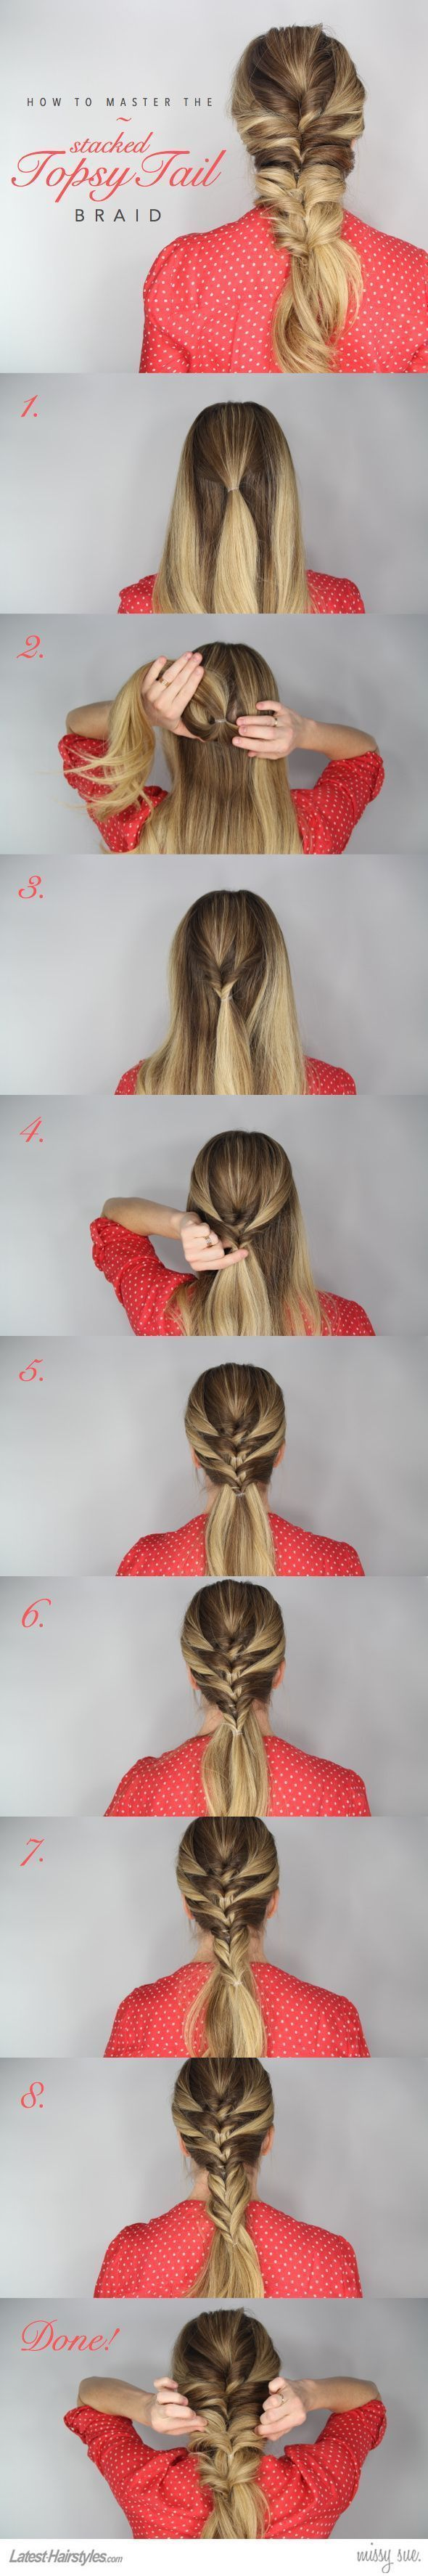 best hair images on pinterest hair ideas coiffure facile and